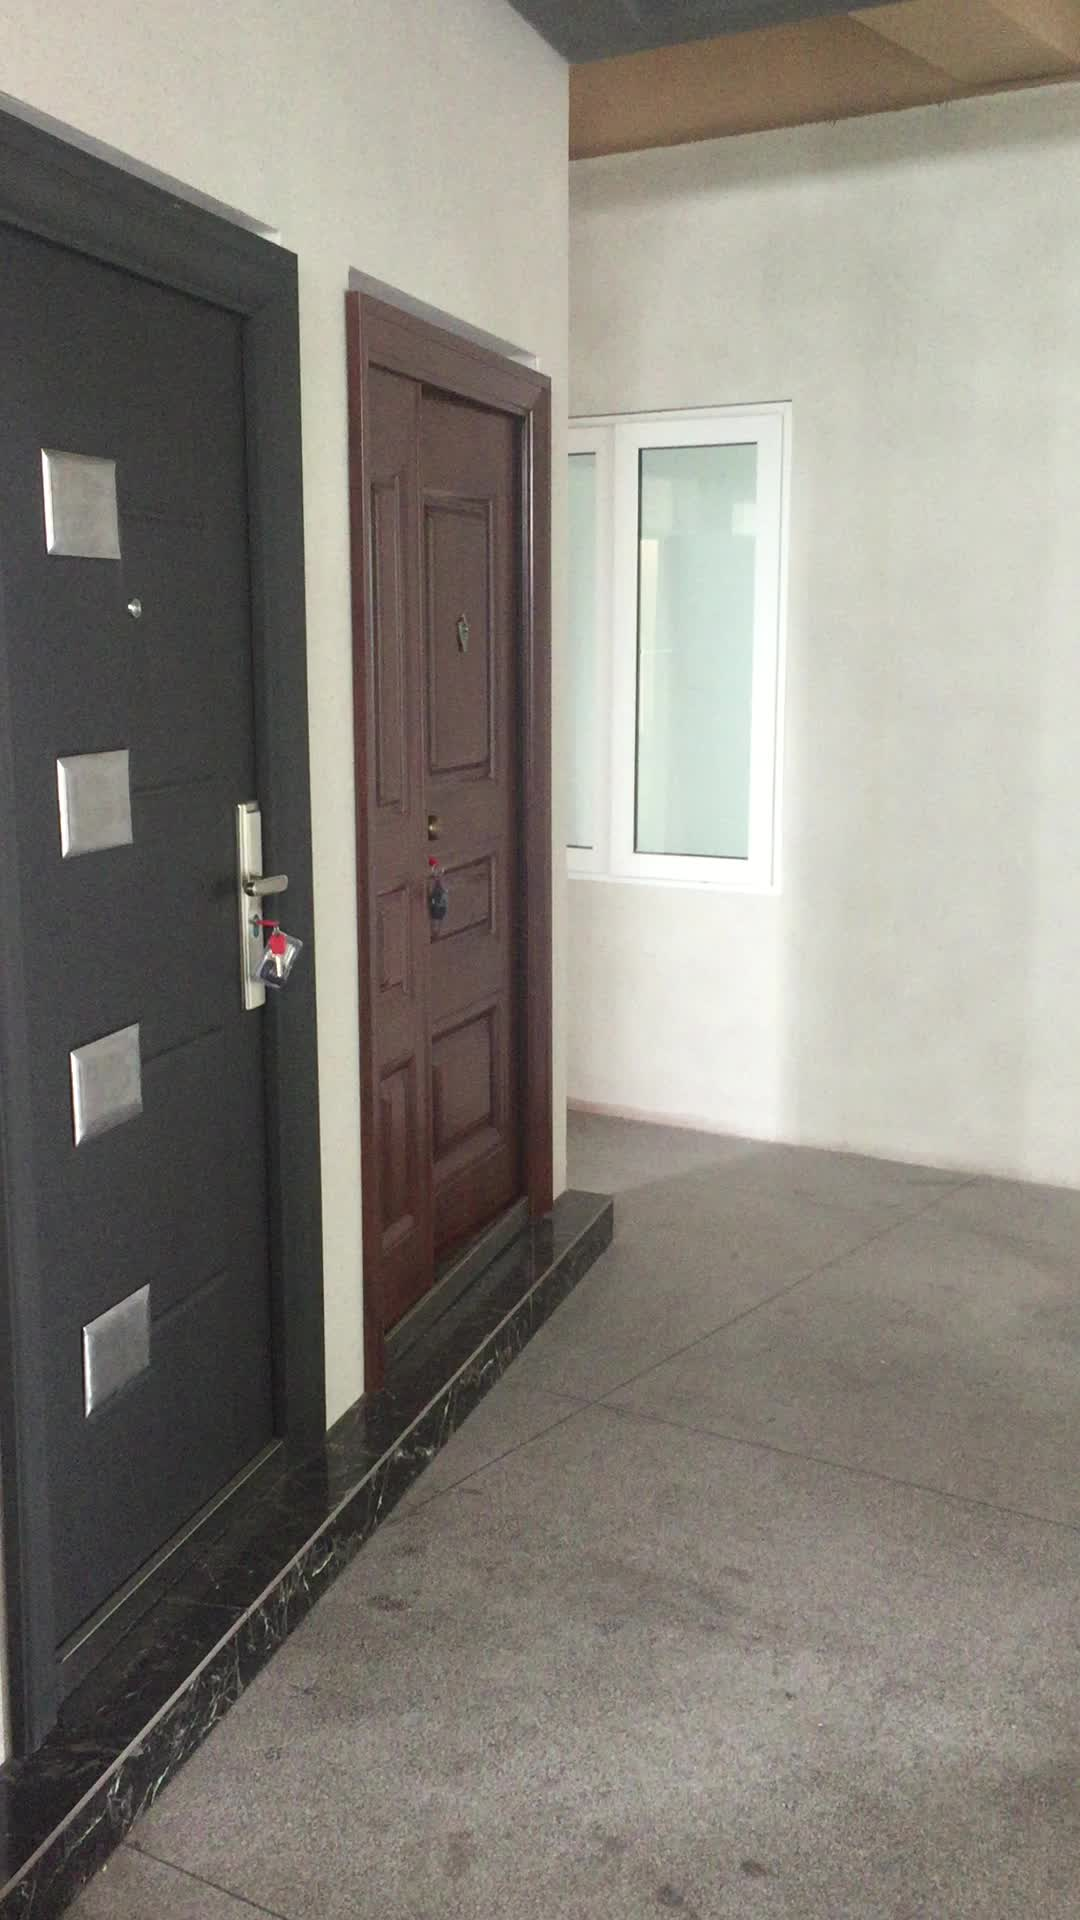 30 x 78 exterior steel door with top vents design buy 30 for Upvc front door 78 x 30